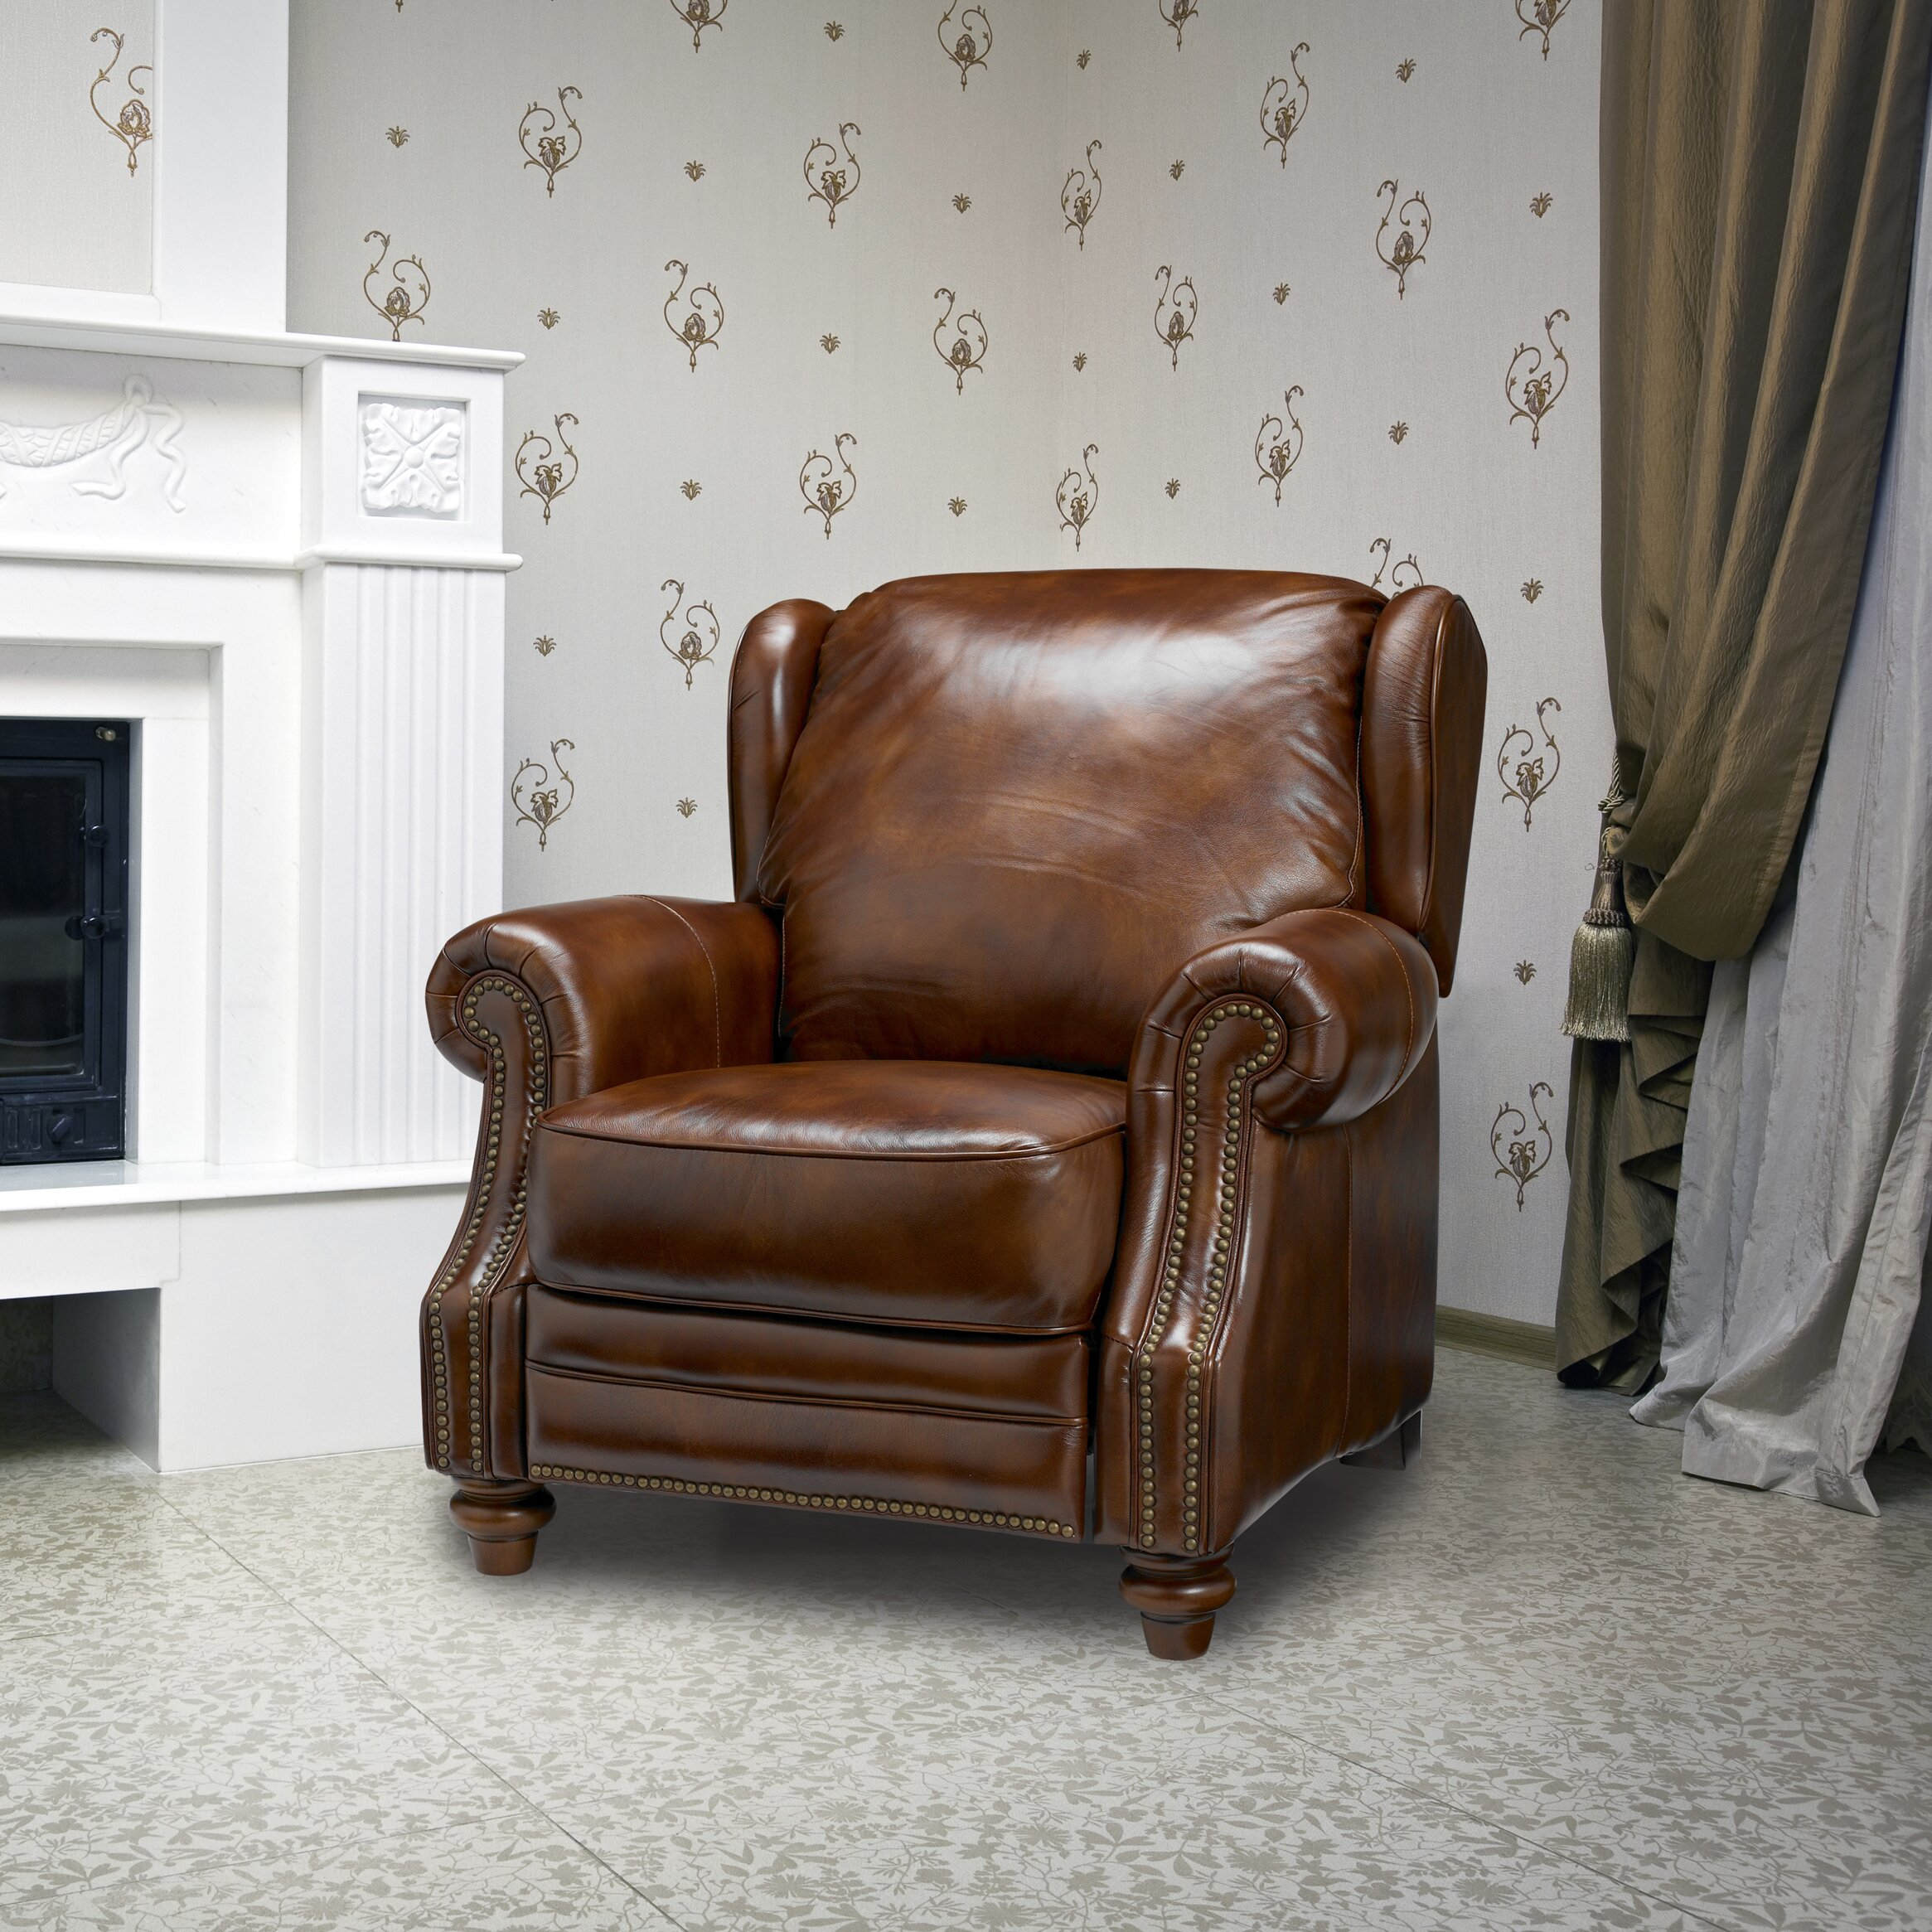 Leather Recliner Sofa Rooms To Go: Sofas To Go Henderson Leather Wing Recliner & Reviews